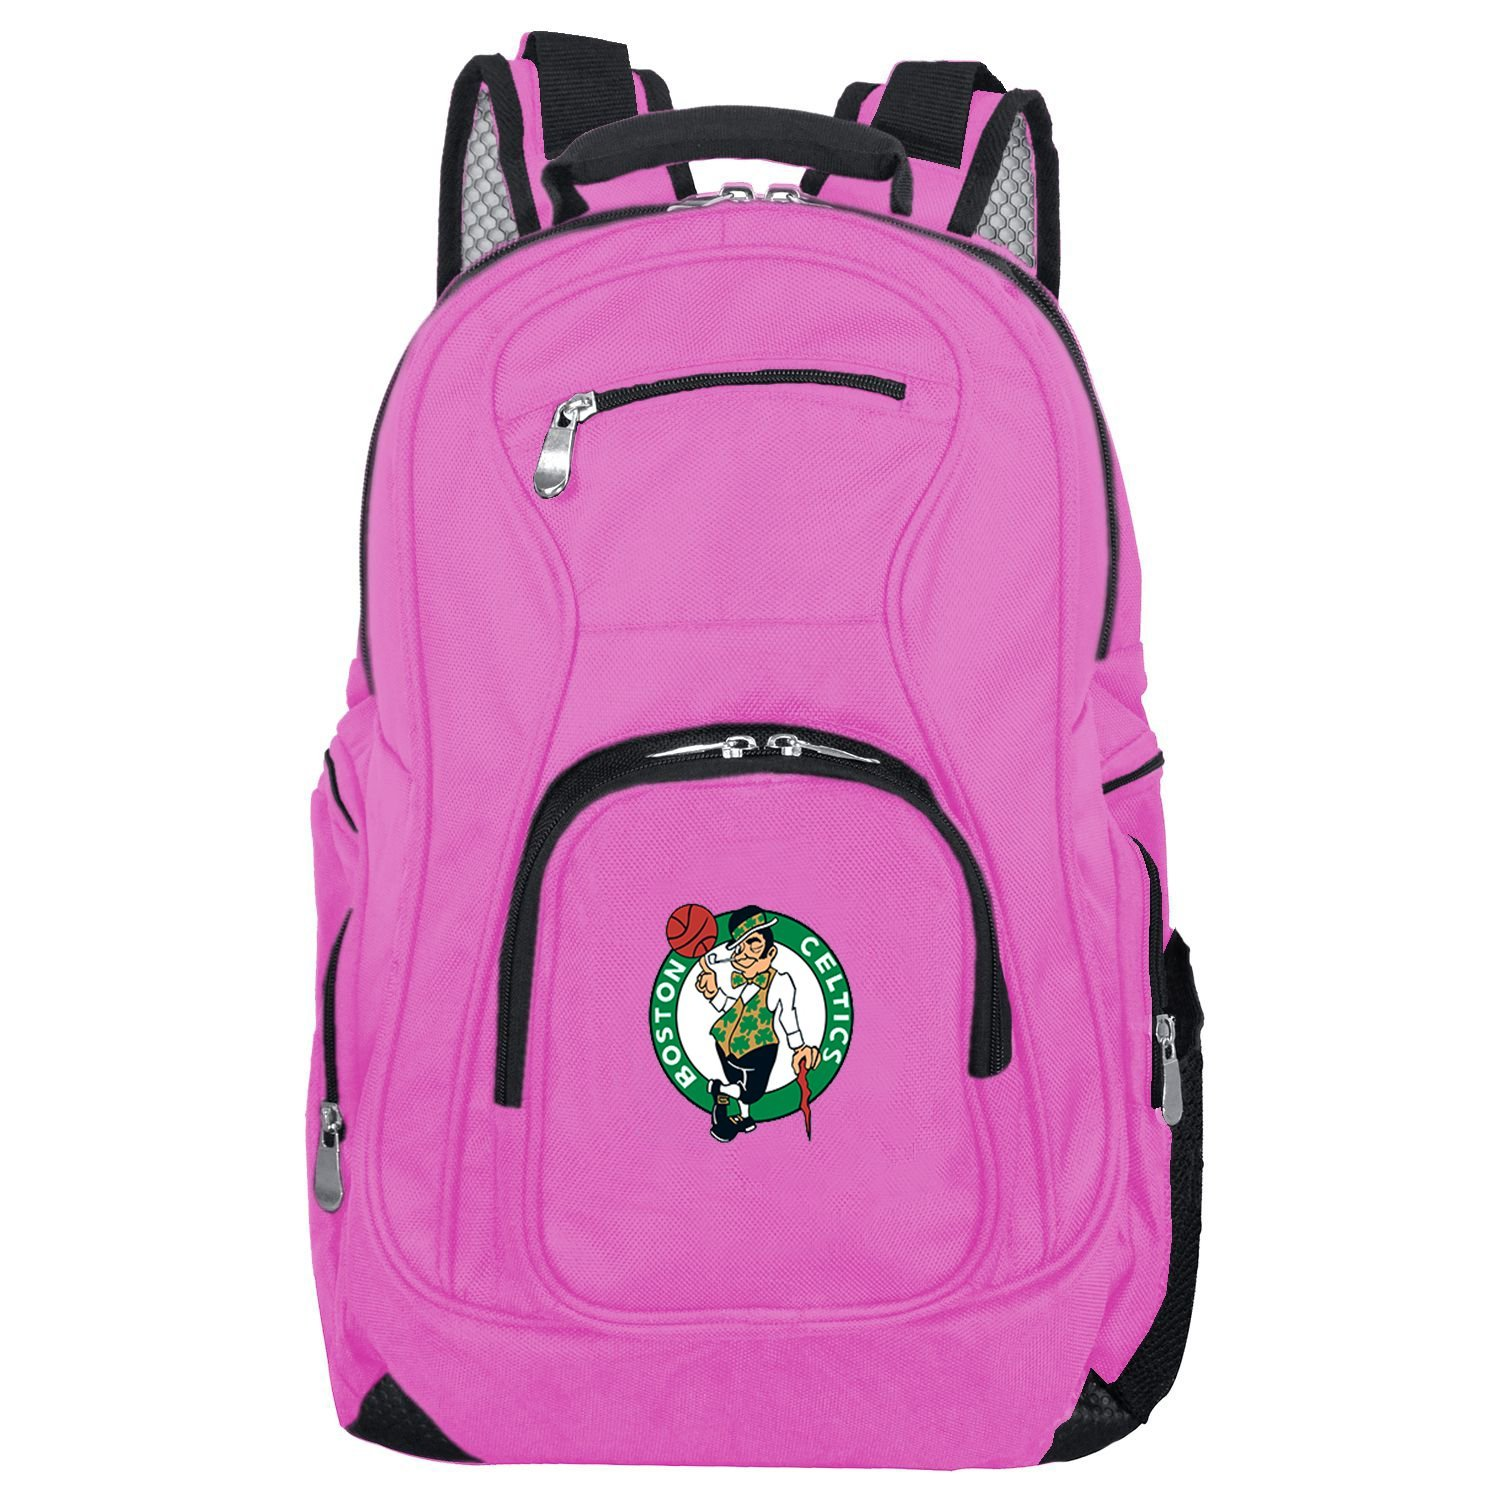 NBA Boston Celtics Voyager Laptop Backpack, 19-inches, Pink